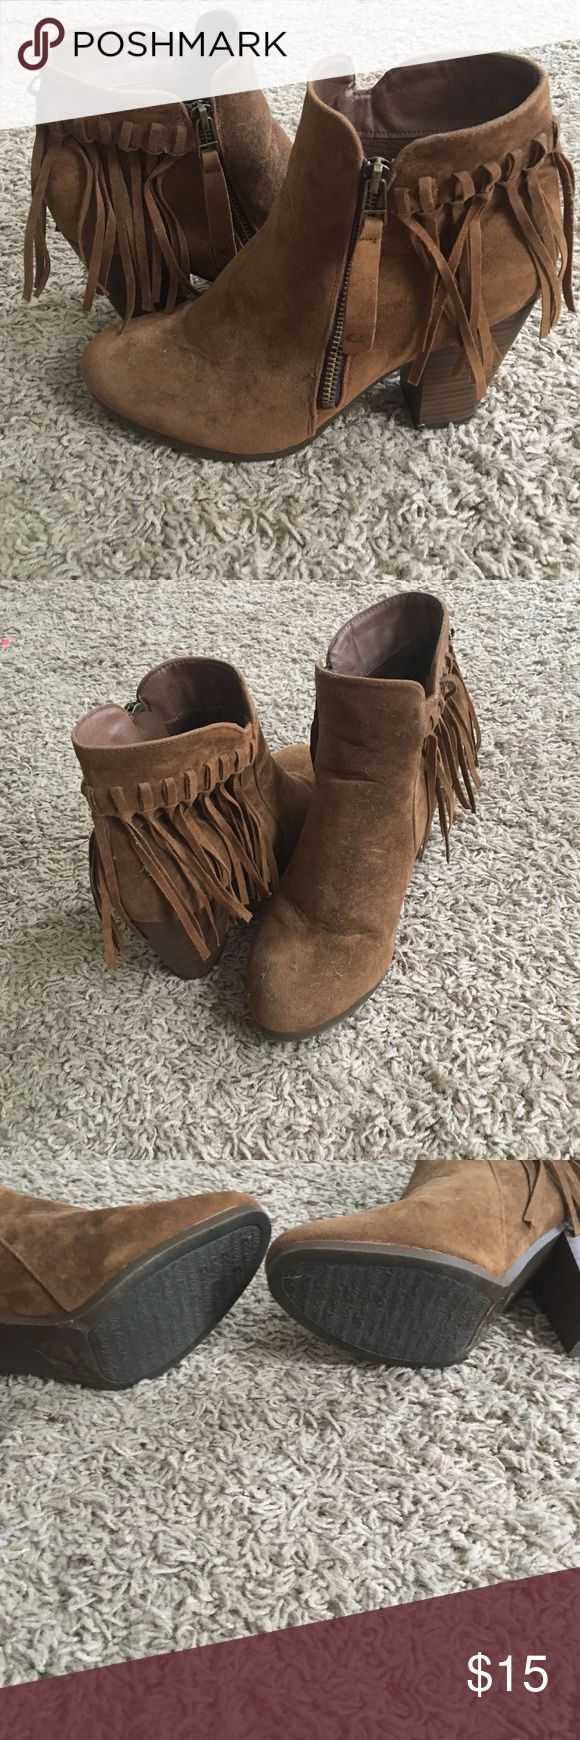 Fringe ankle boots Boutique bought worn once fringe ankle booties breckelles Shoes Ankle Boots & Booties